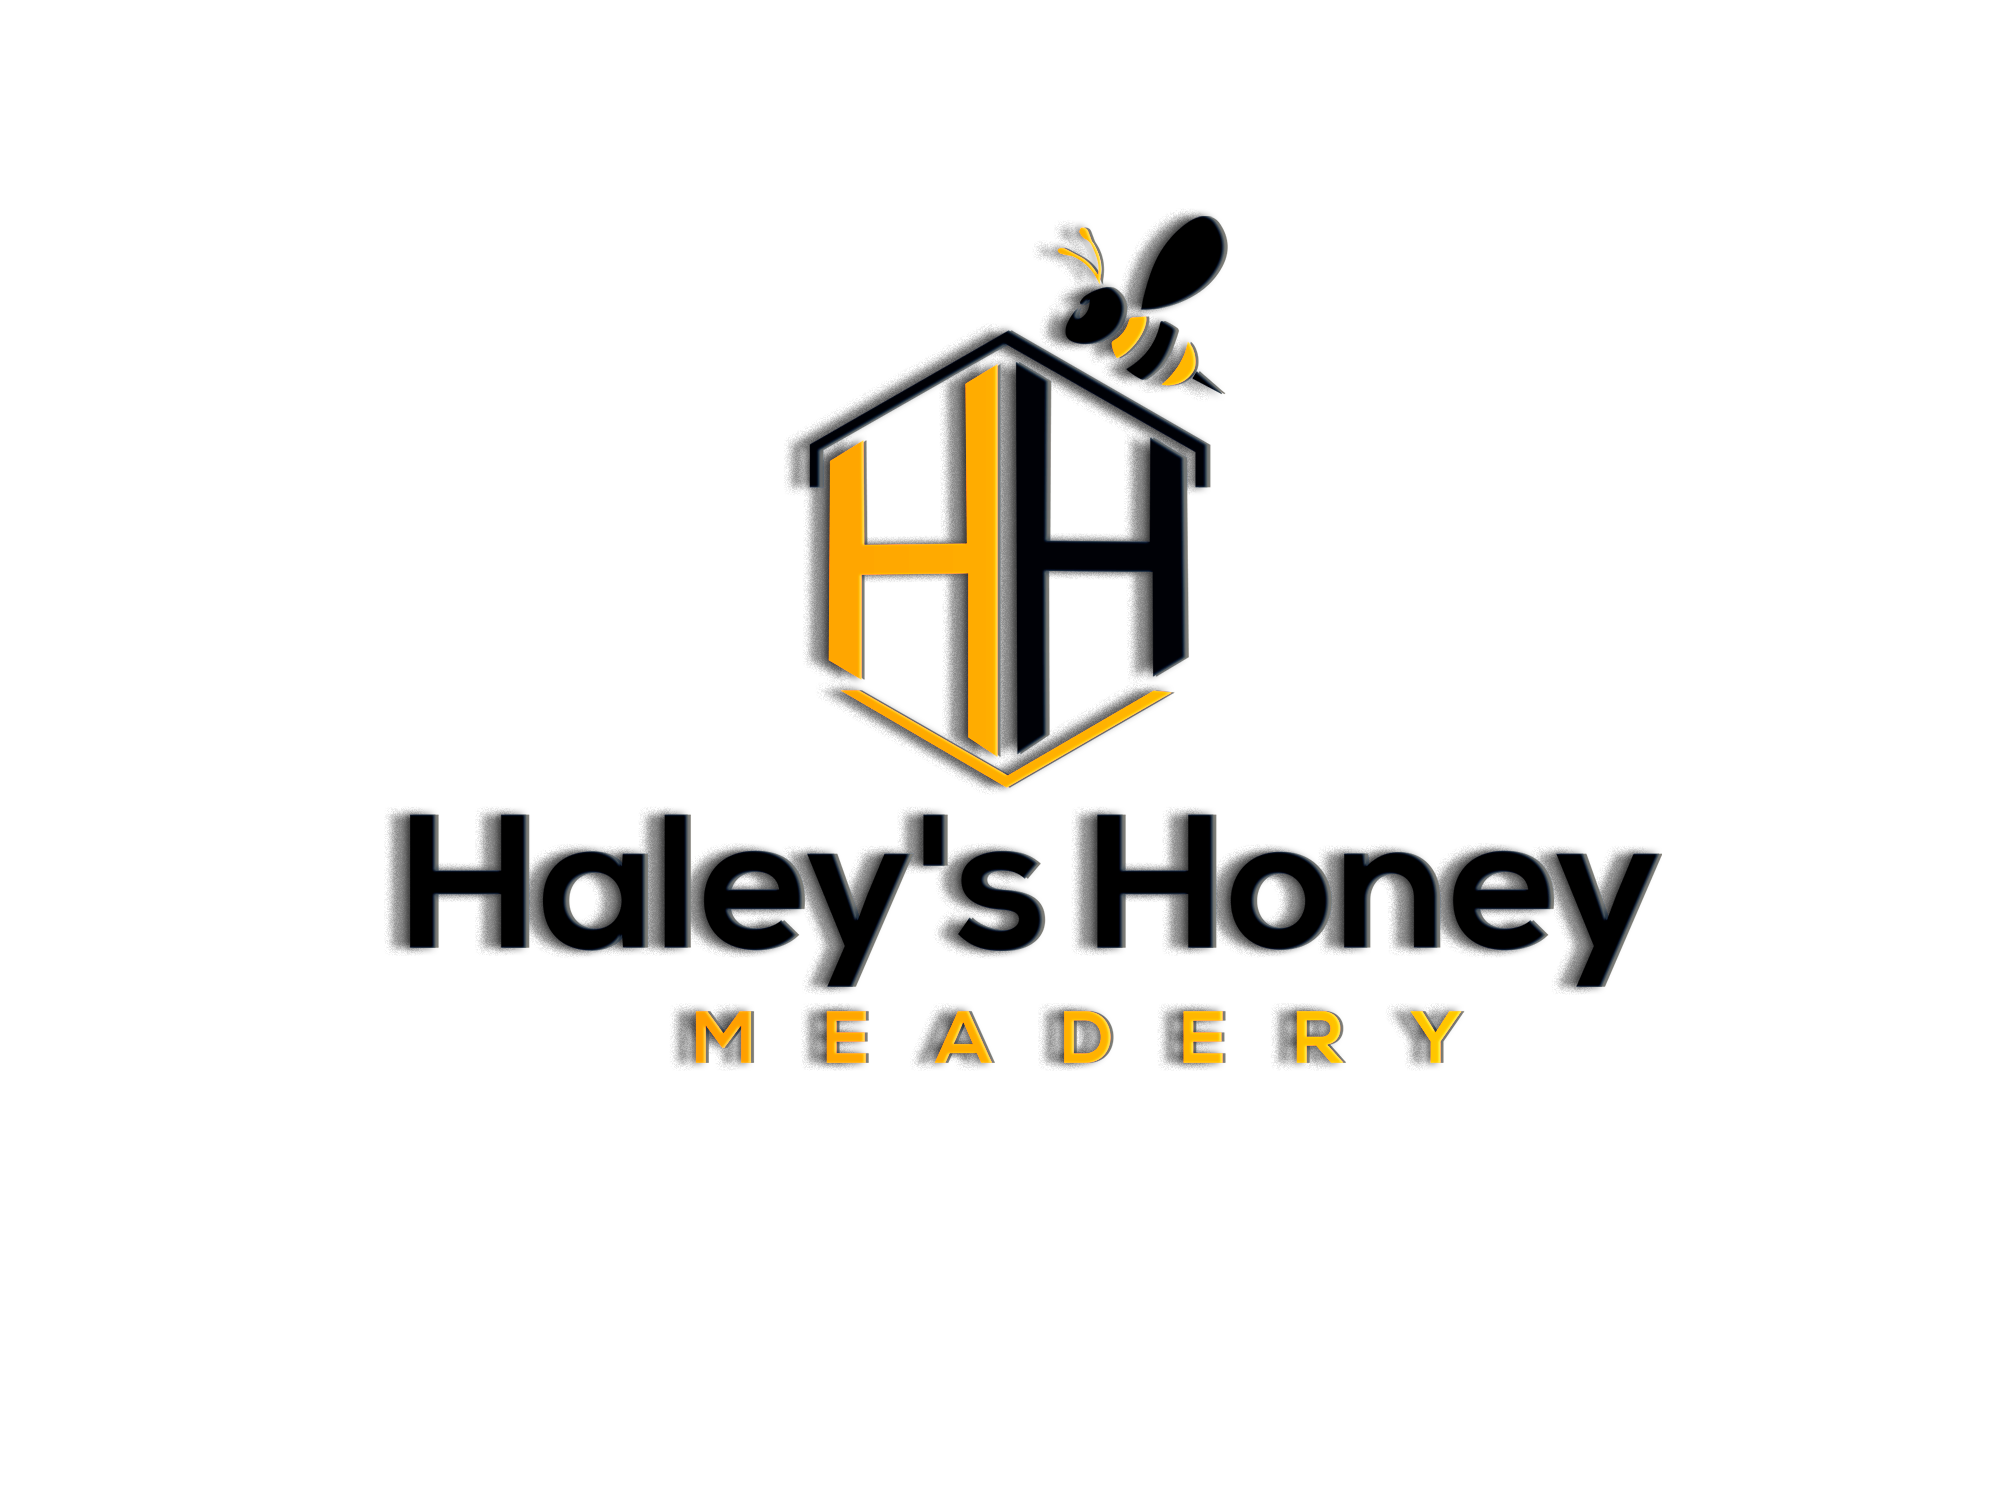 Haley's Honey Meadery